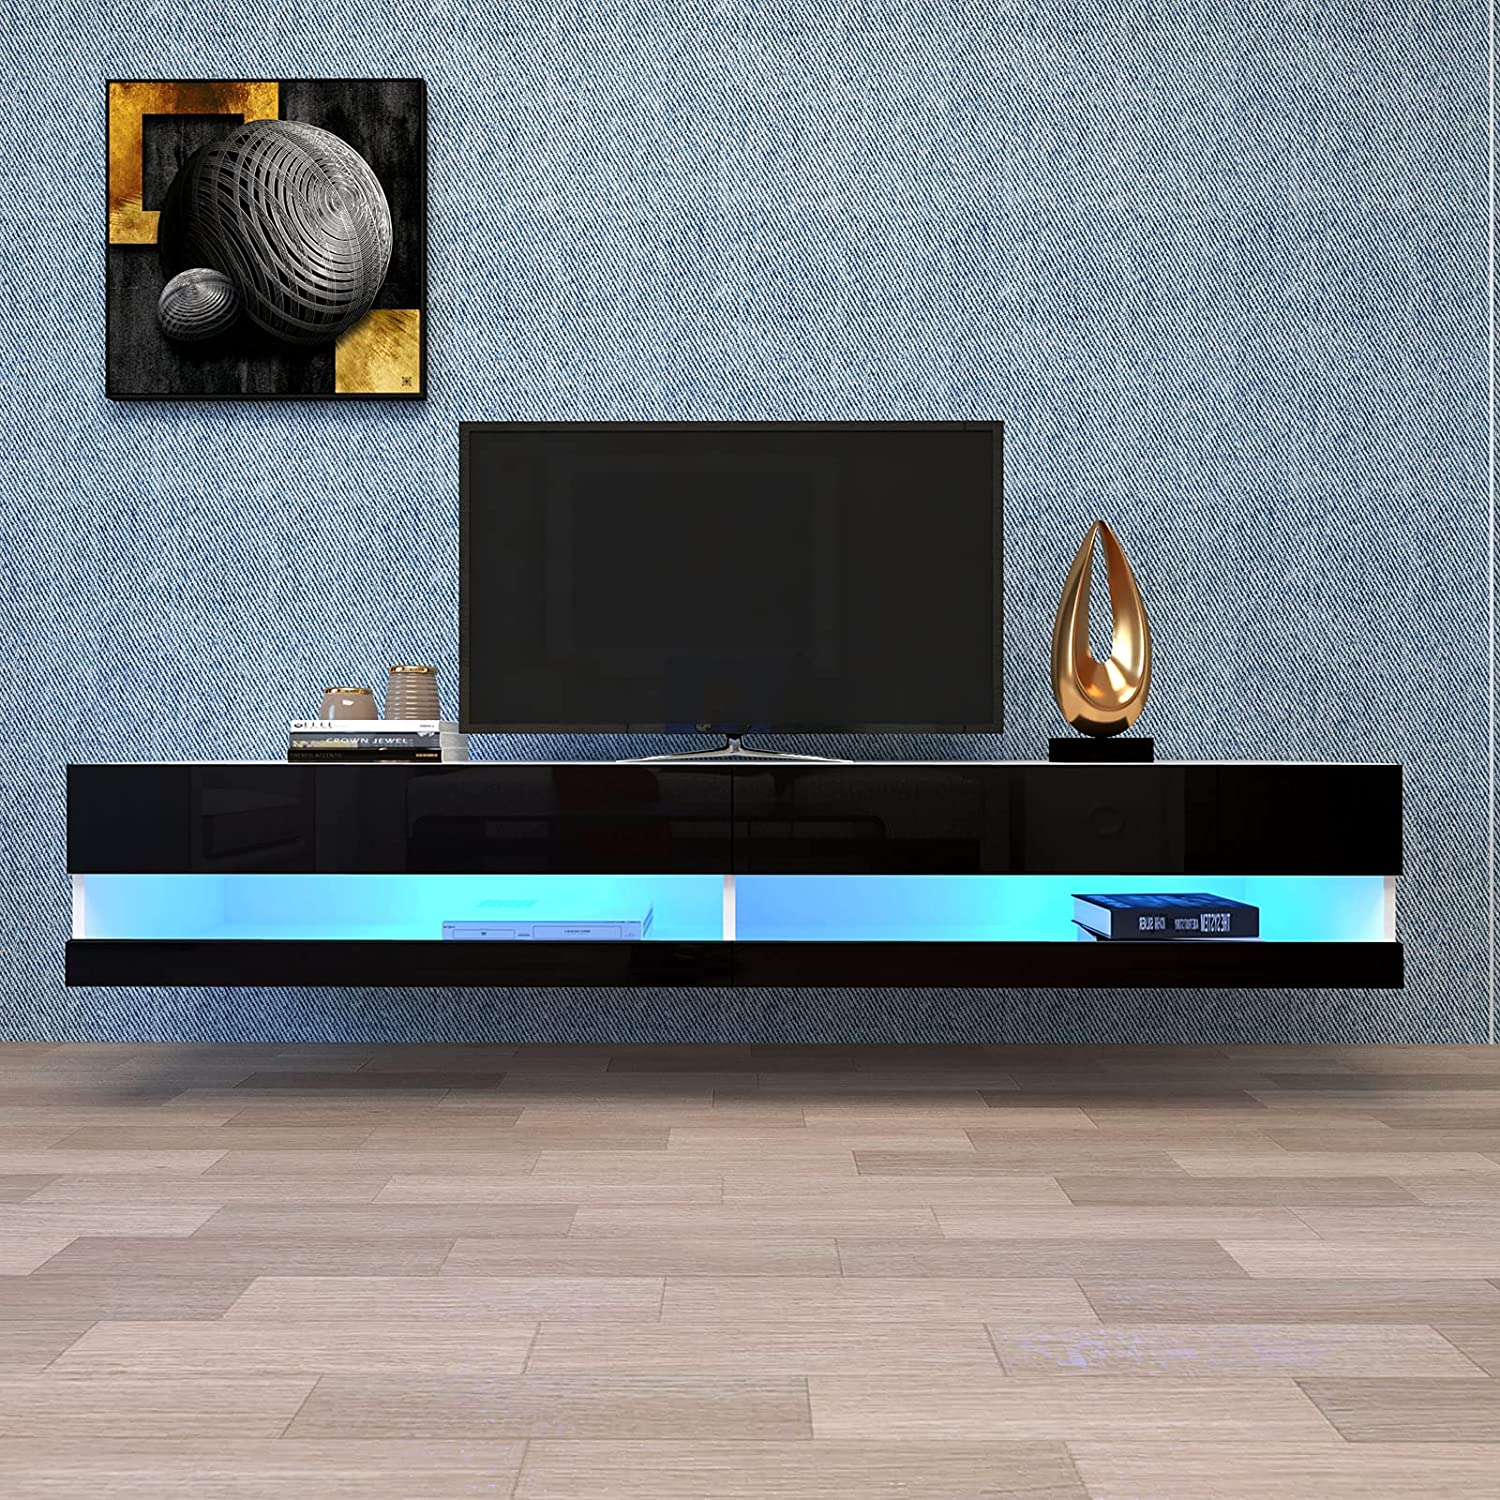 20 Color LED Effects Wall Mounted Living Room Console Table Large Storage Cabinet for 80 inch TVs,Lomgee Floating TV Stand Entertainment Center- W Multiple Color Options (White)